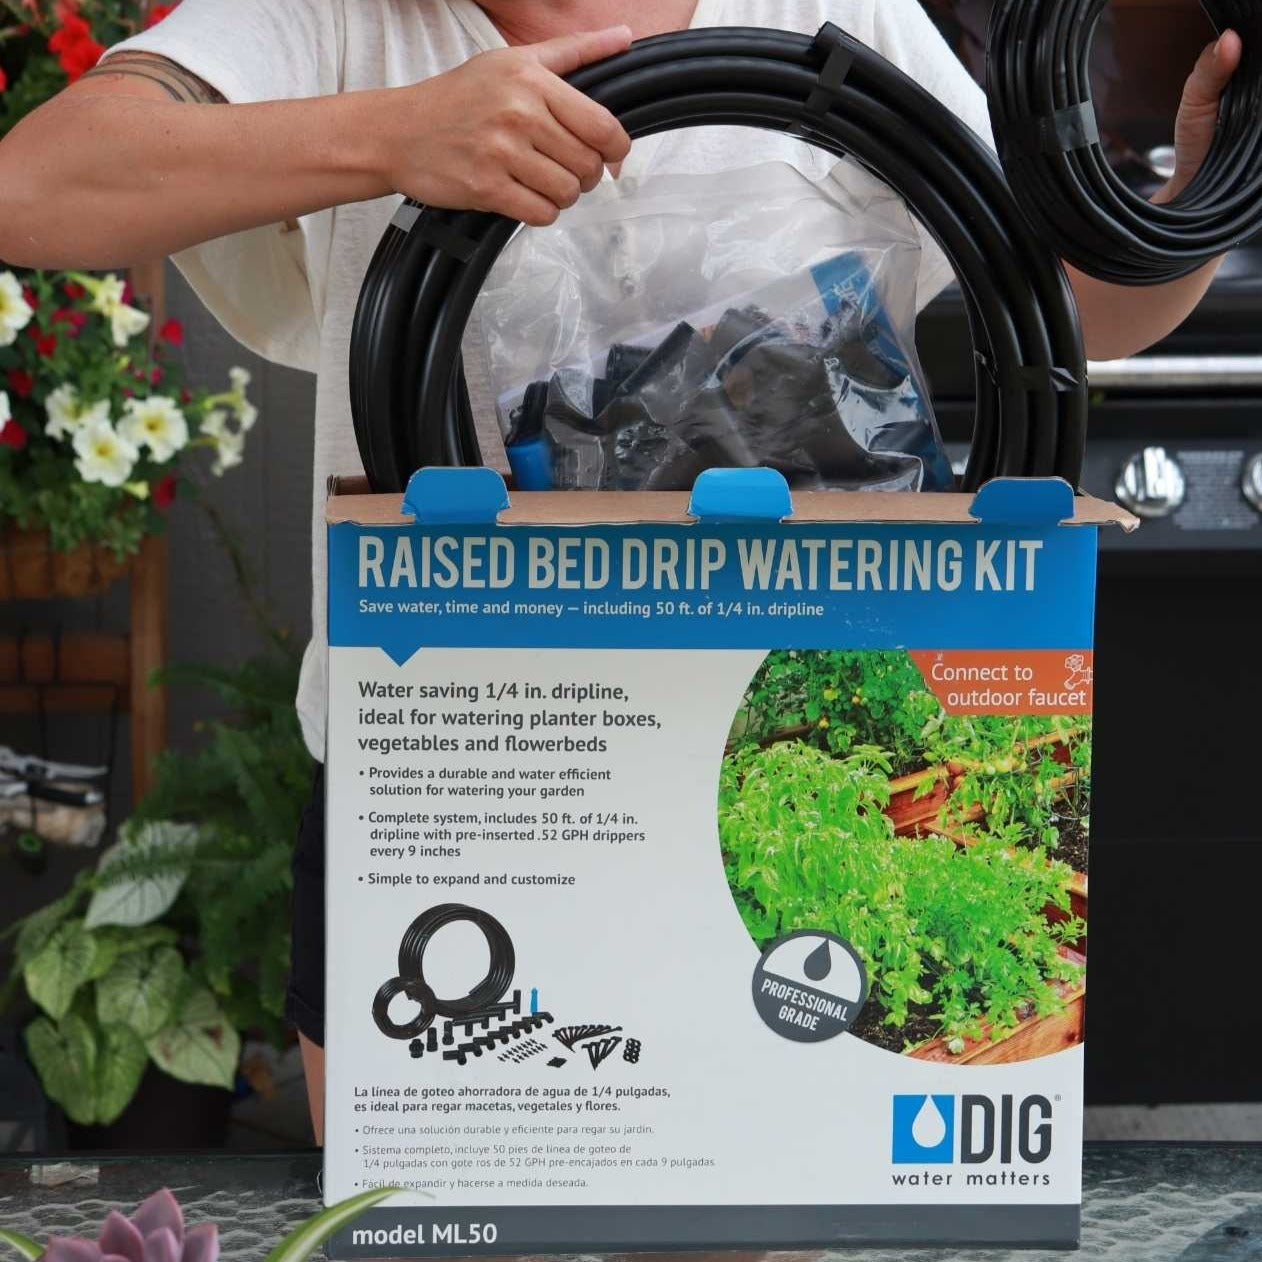 Watering - Raised Bed Drip Irrigation Kit